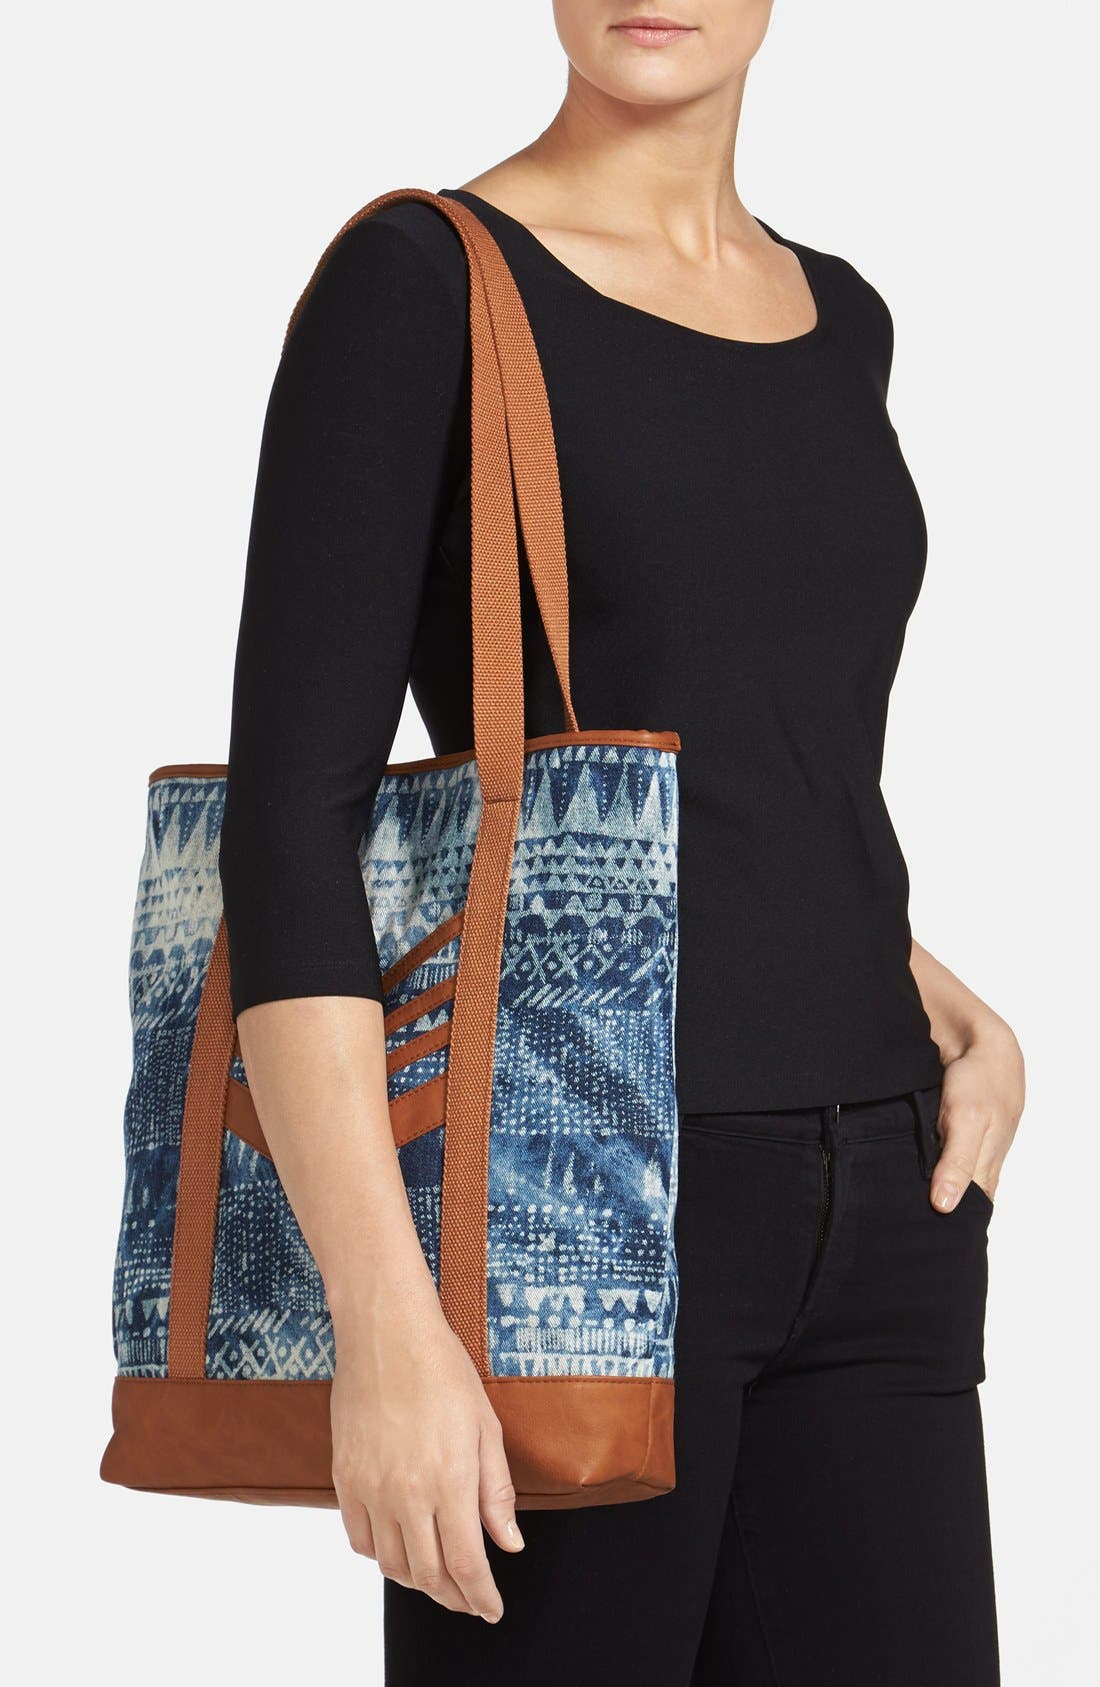 VOLCOM,                             'Thrifty Fun' Bleach Pattern Tote,                             Alternate thumbnail 4, color,                             200